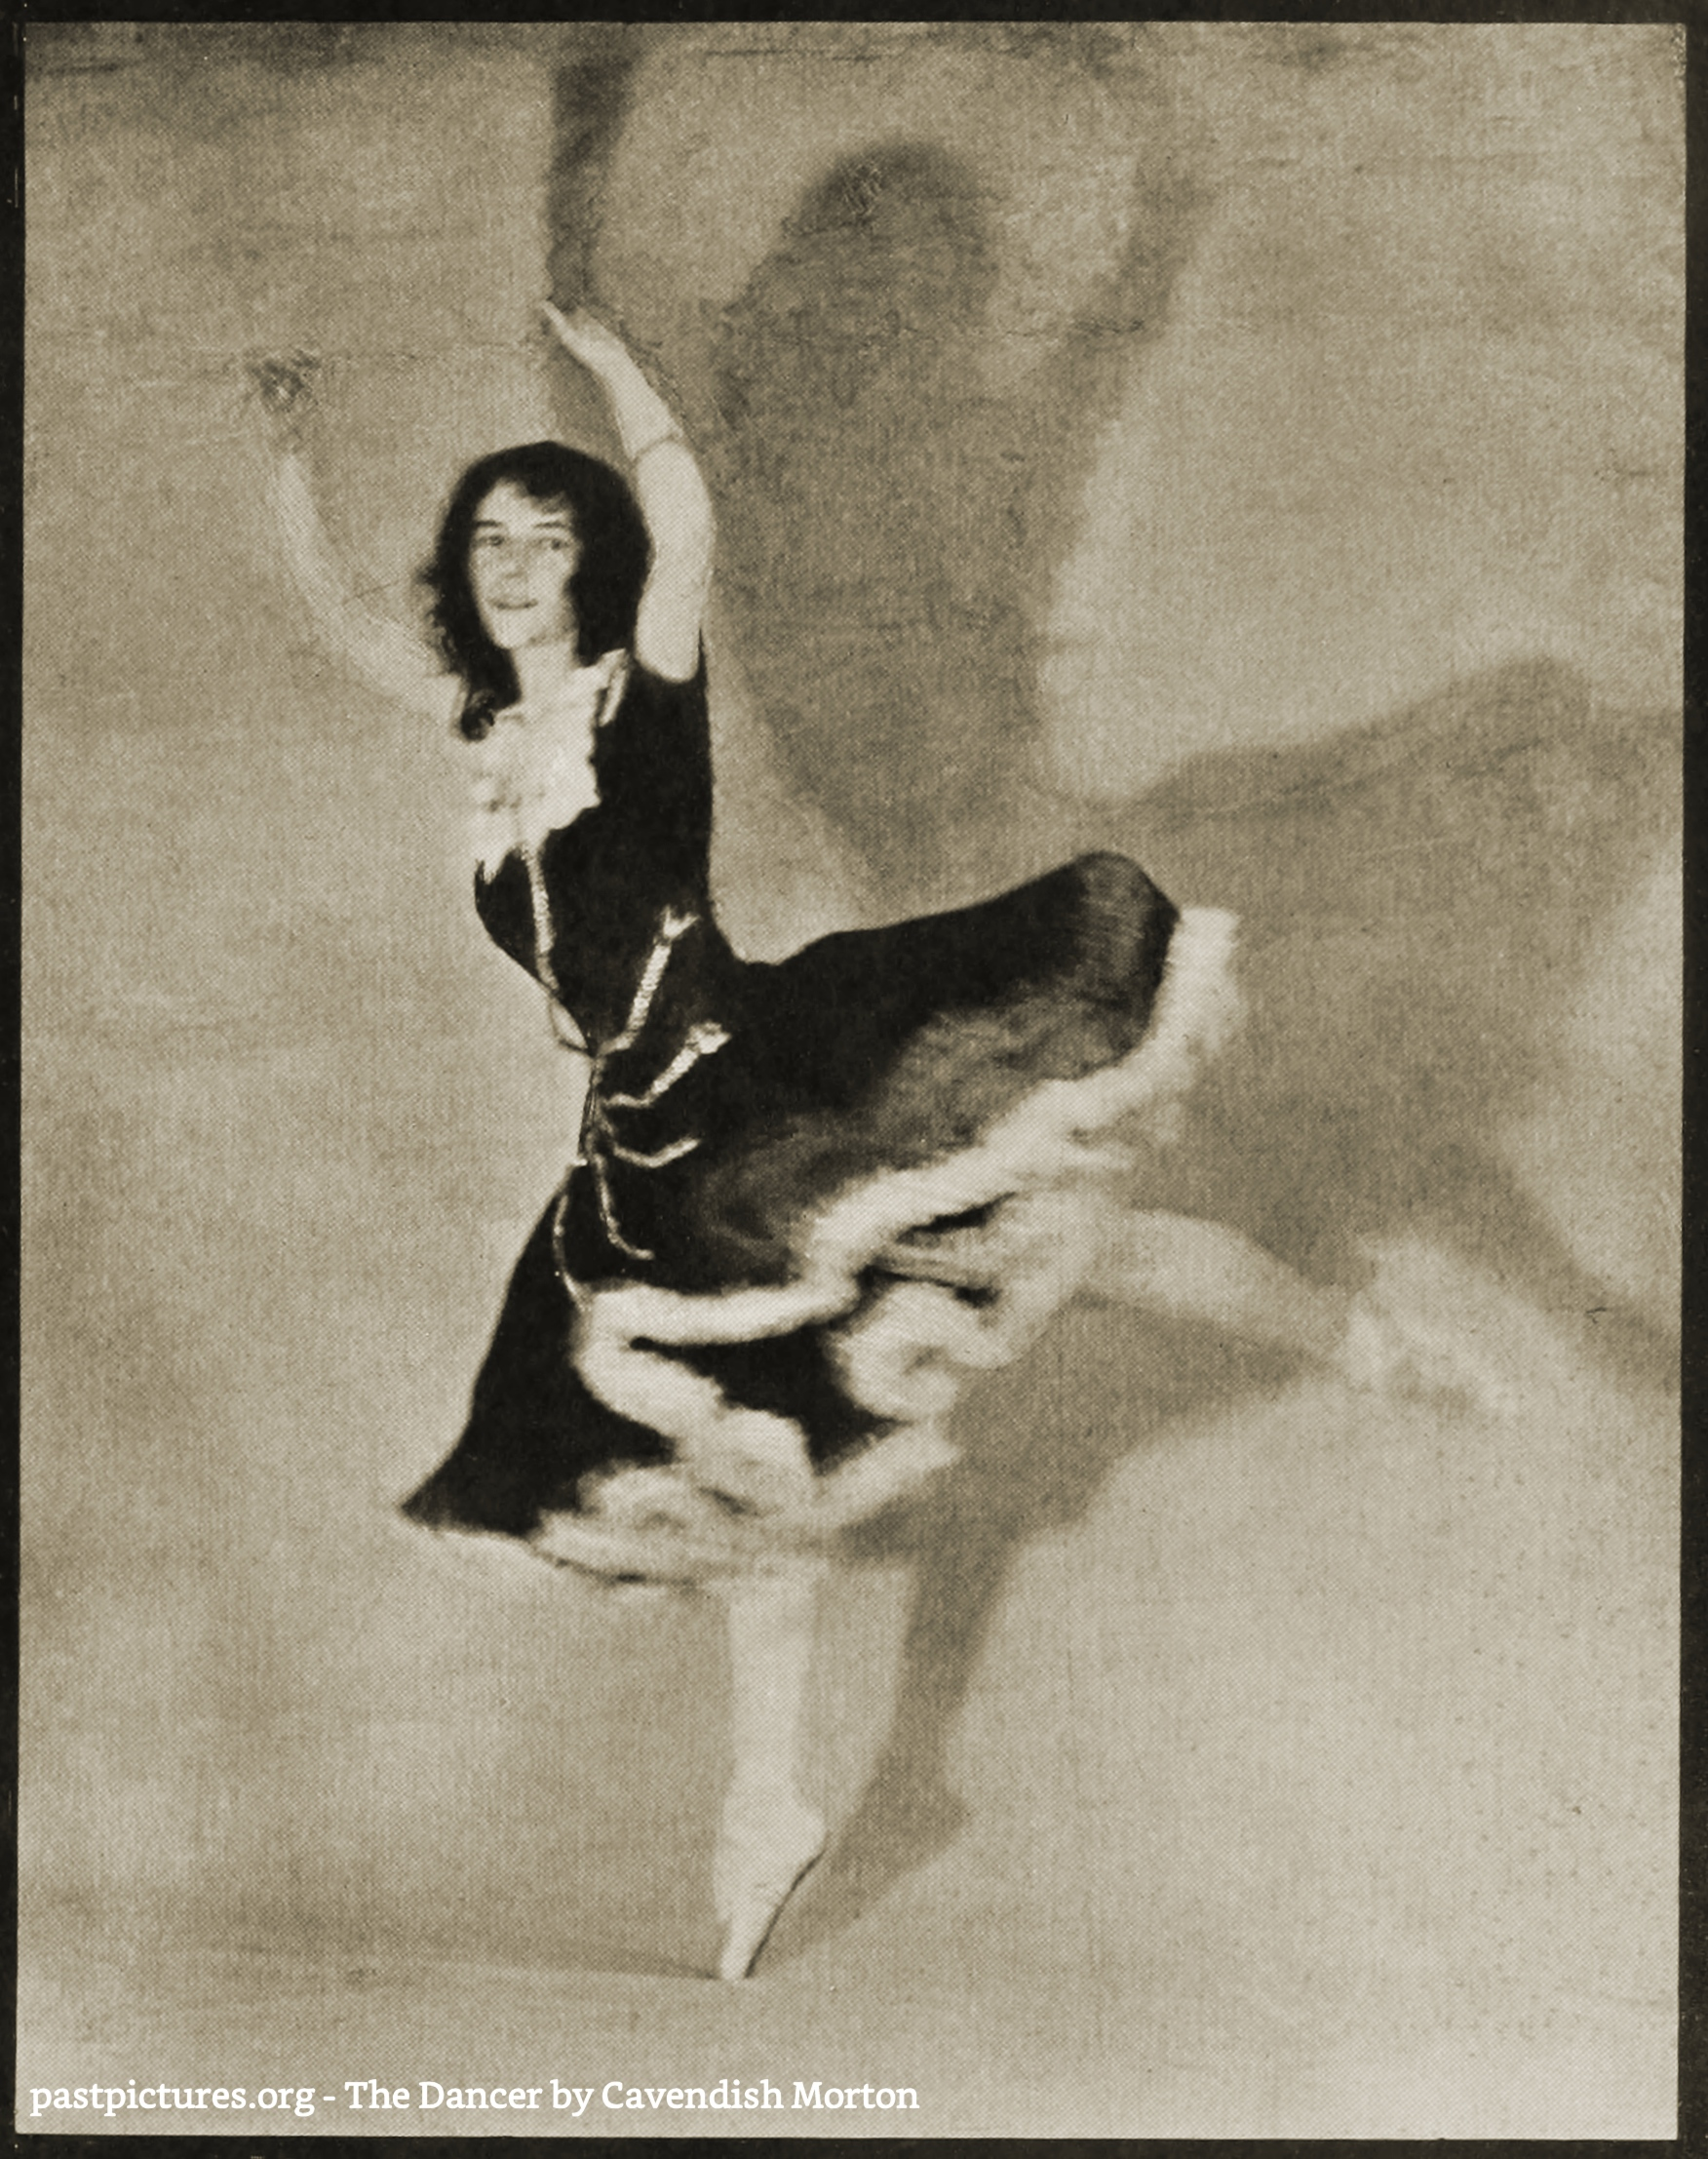 The Dancer by Cavendish Morton about 1908